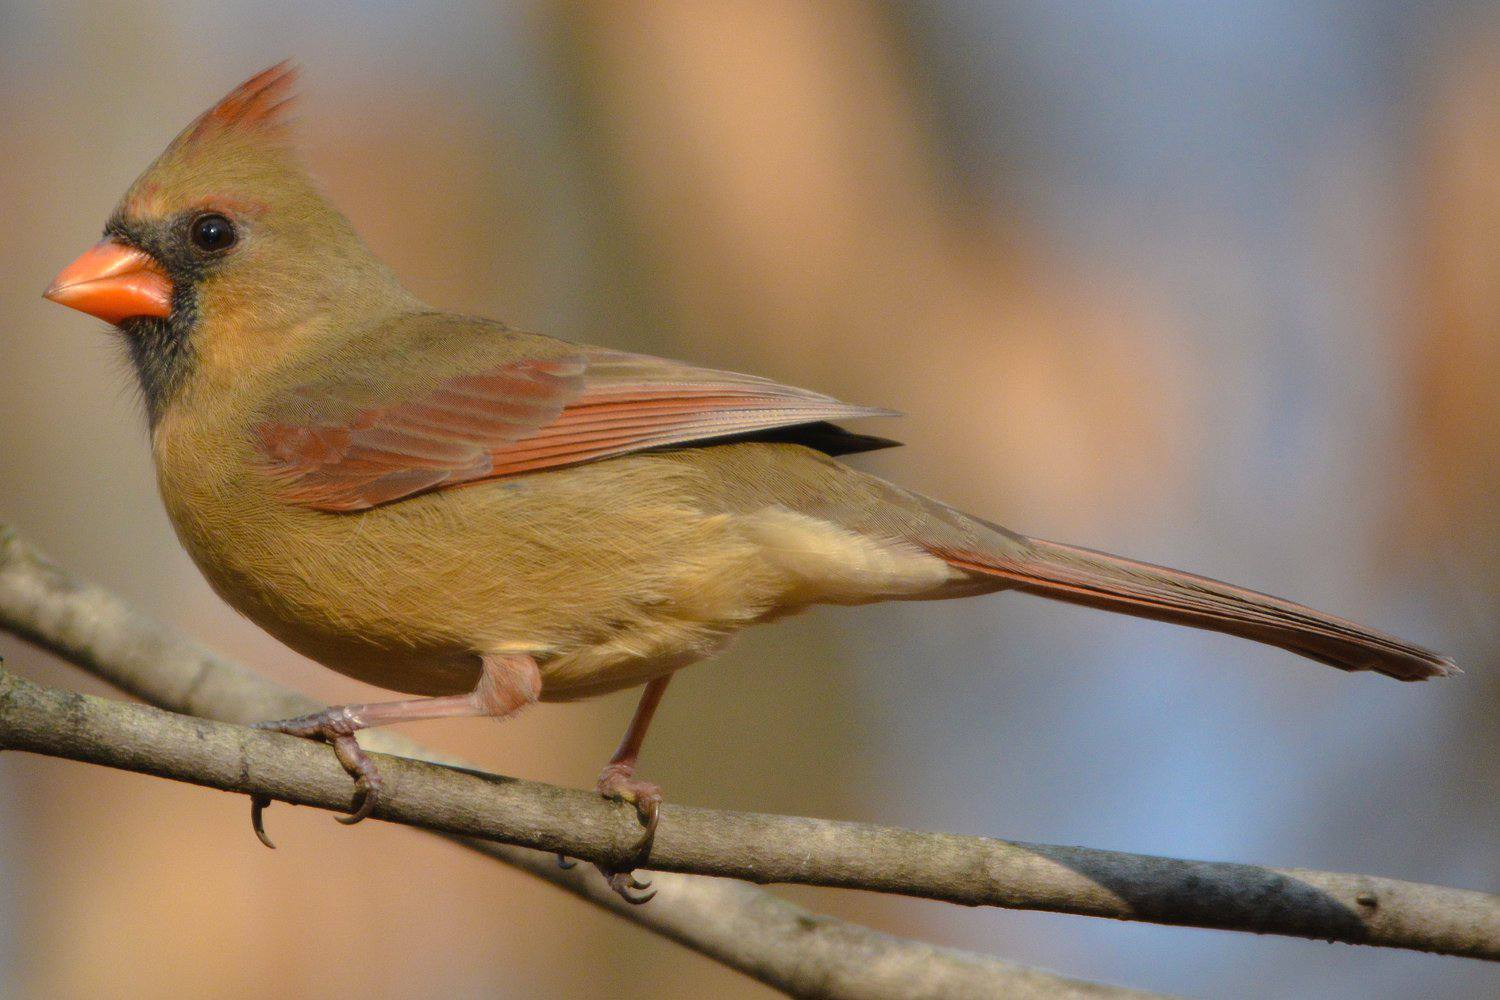 Northern Cardinal, the state bird of Indiana, on a tree branch.